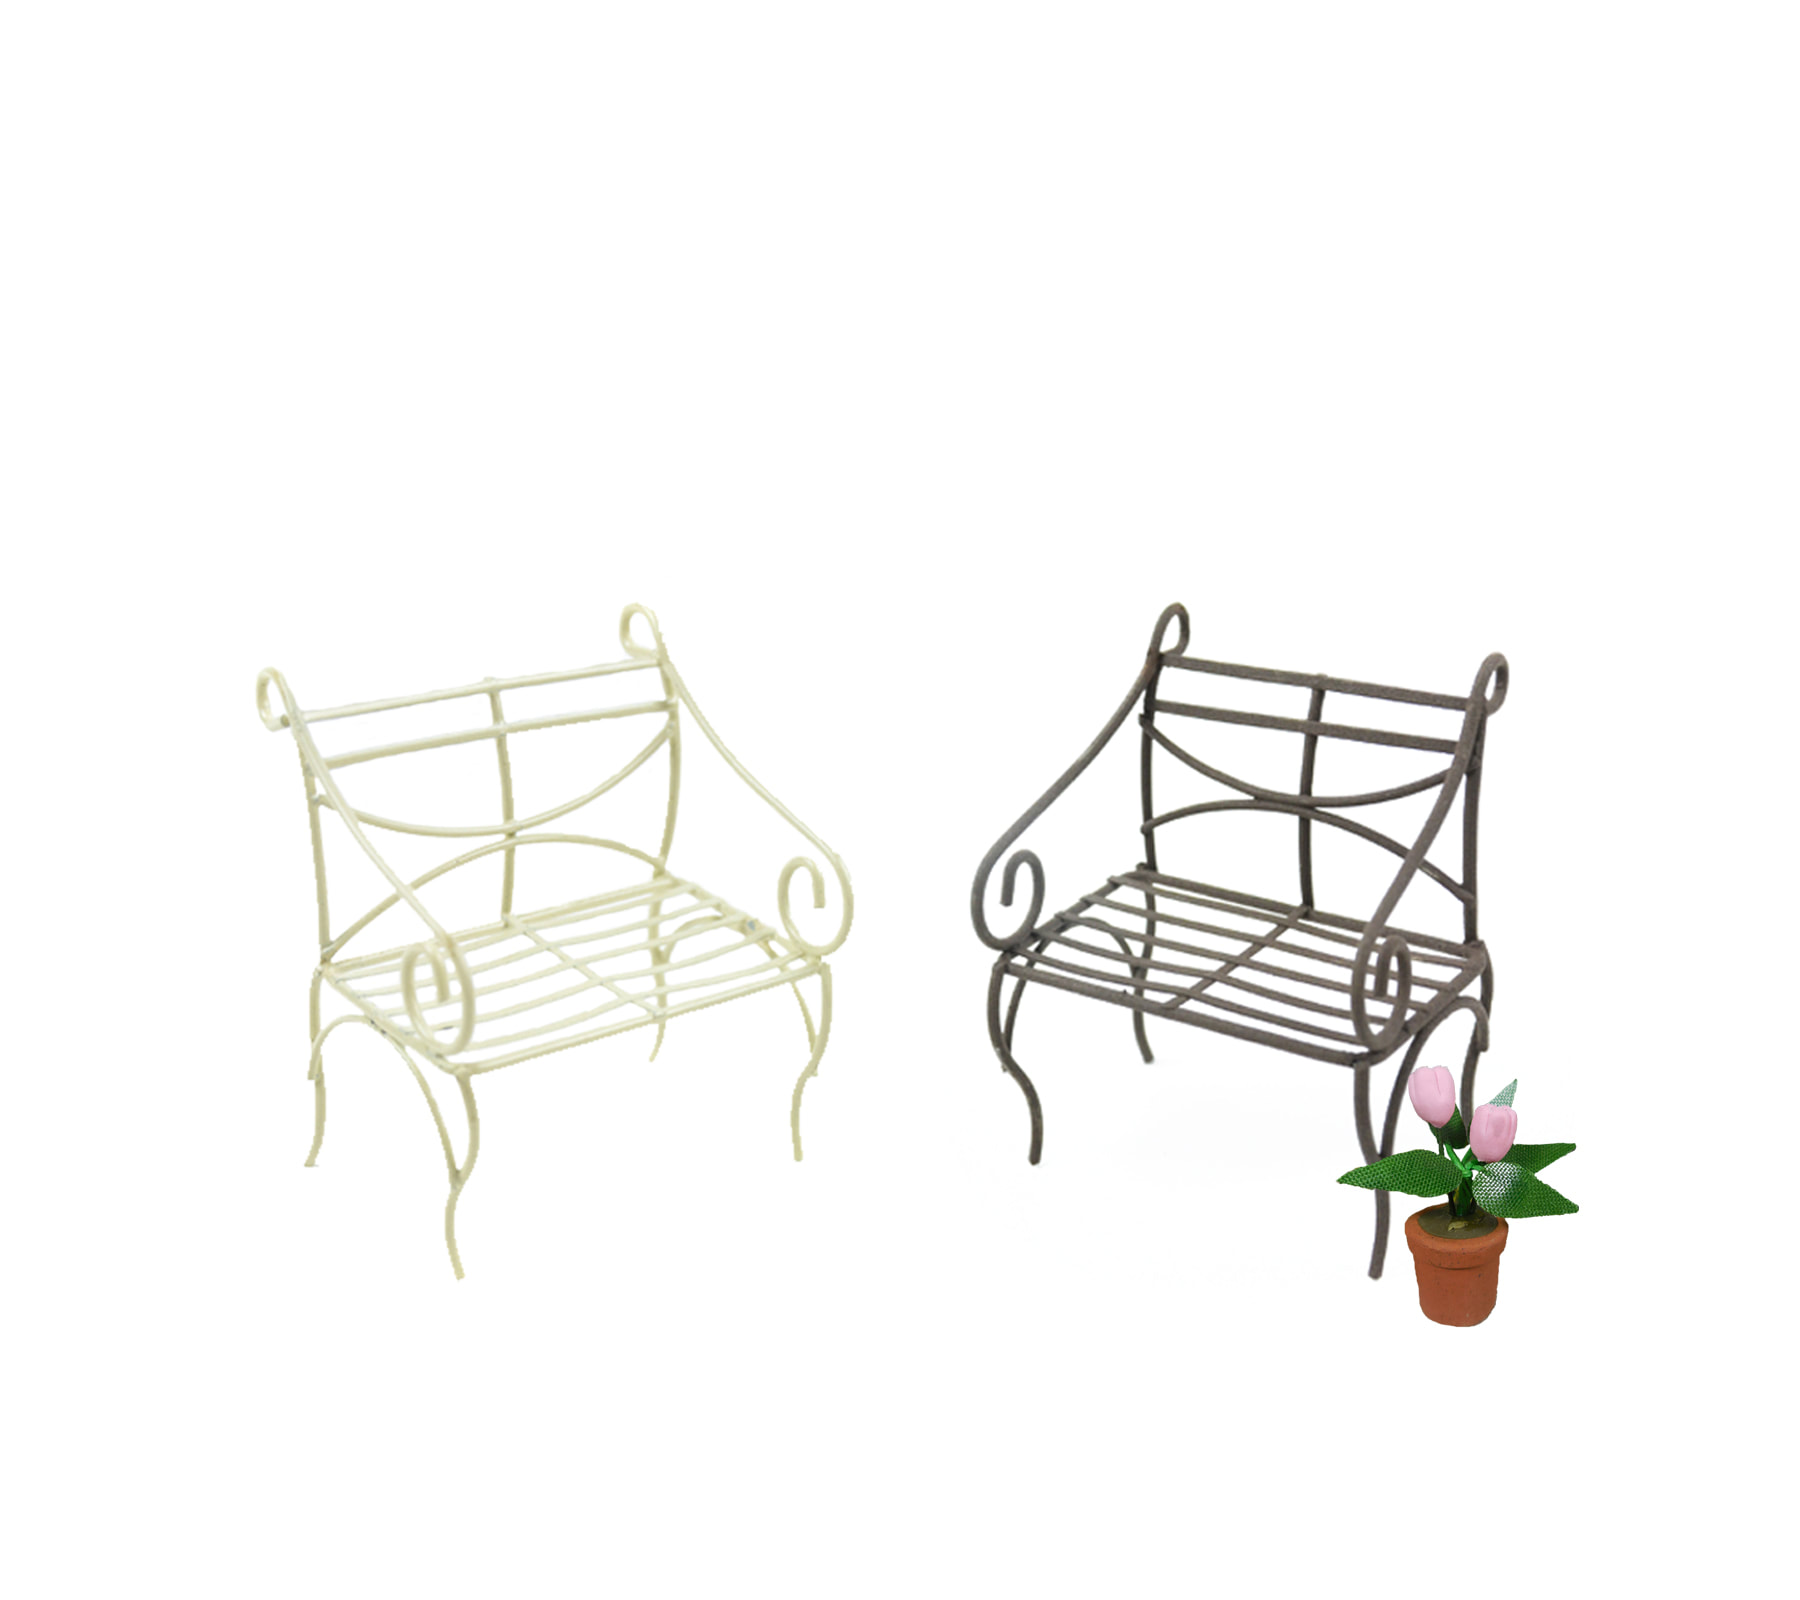 Awe Inspiring Miniature Metal Park Bench In Ivory Or Brown Realistic Bralicious Painted Fabric Chair Ideas Braliciousco